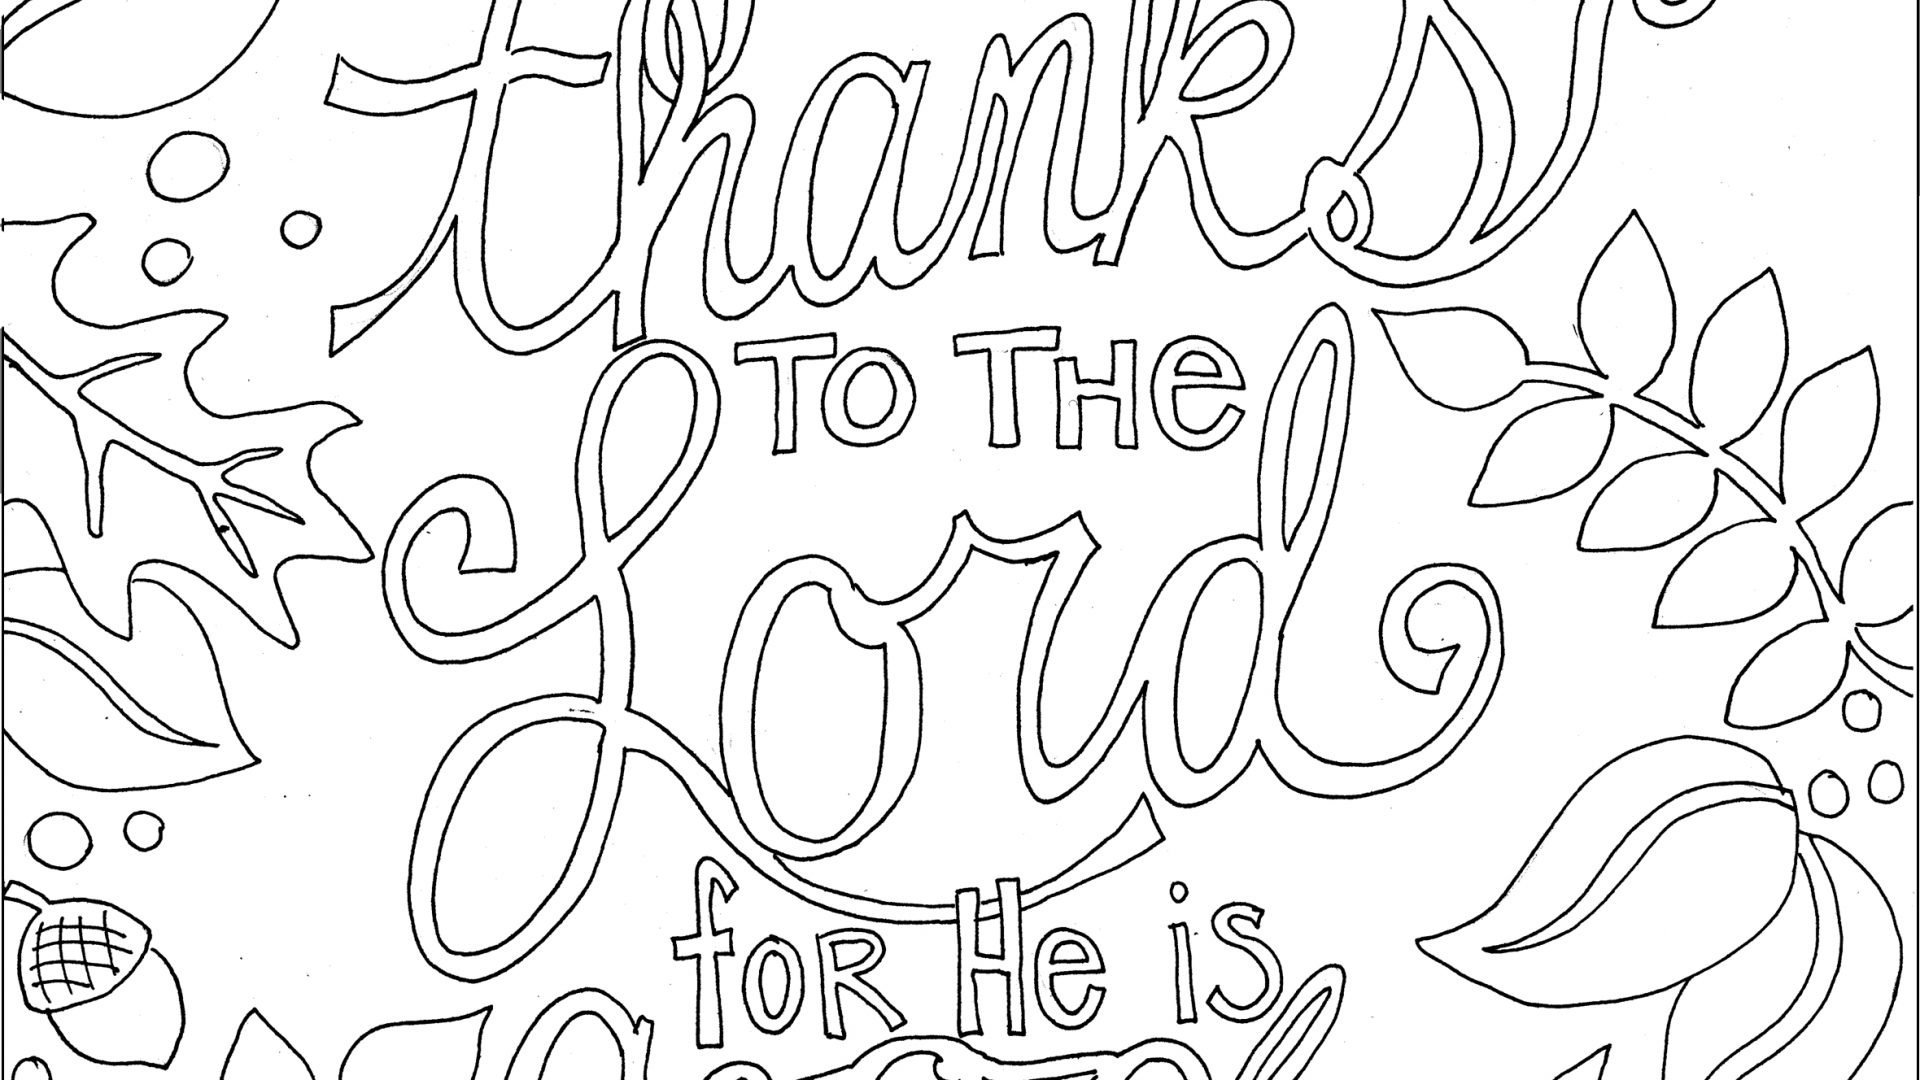 Bible Story Coloring Pages Gospel Light Printable | Free ...